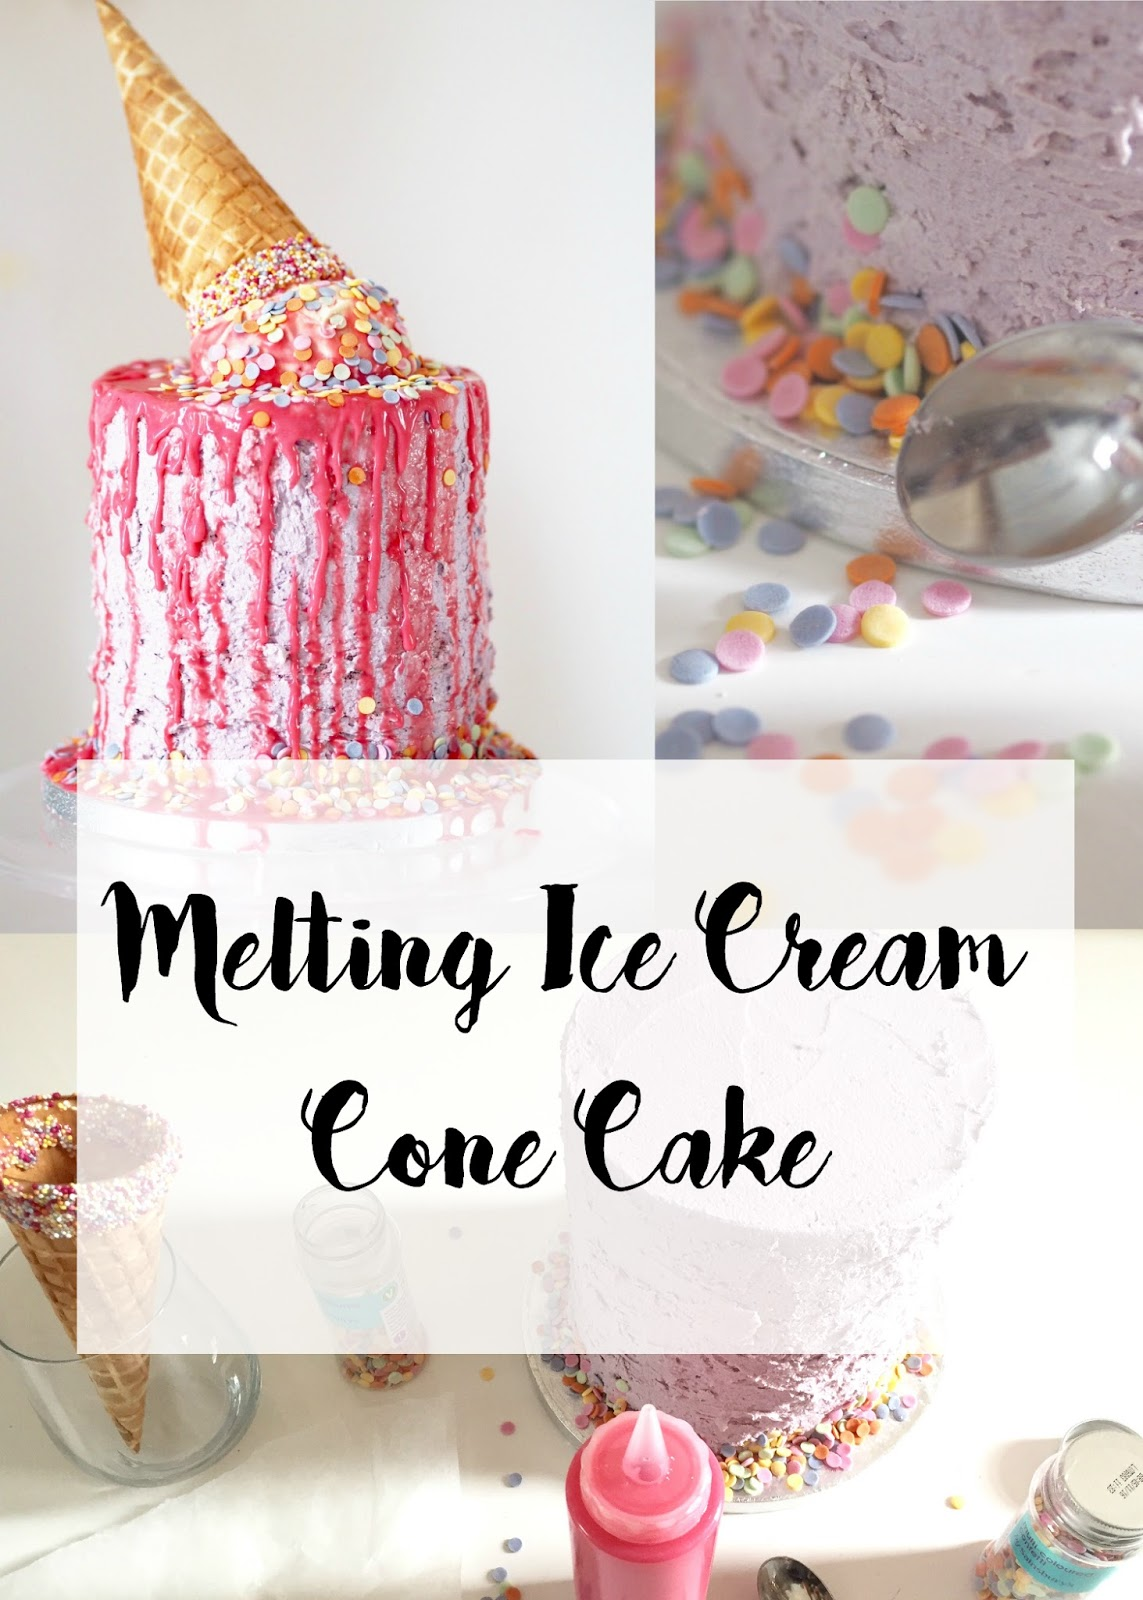 Her Special Melting Ice Cream Cone Birthday Cake So I Thought Would Put Together A Post Explaining How Did It And You Can Make Your Very Own